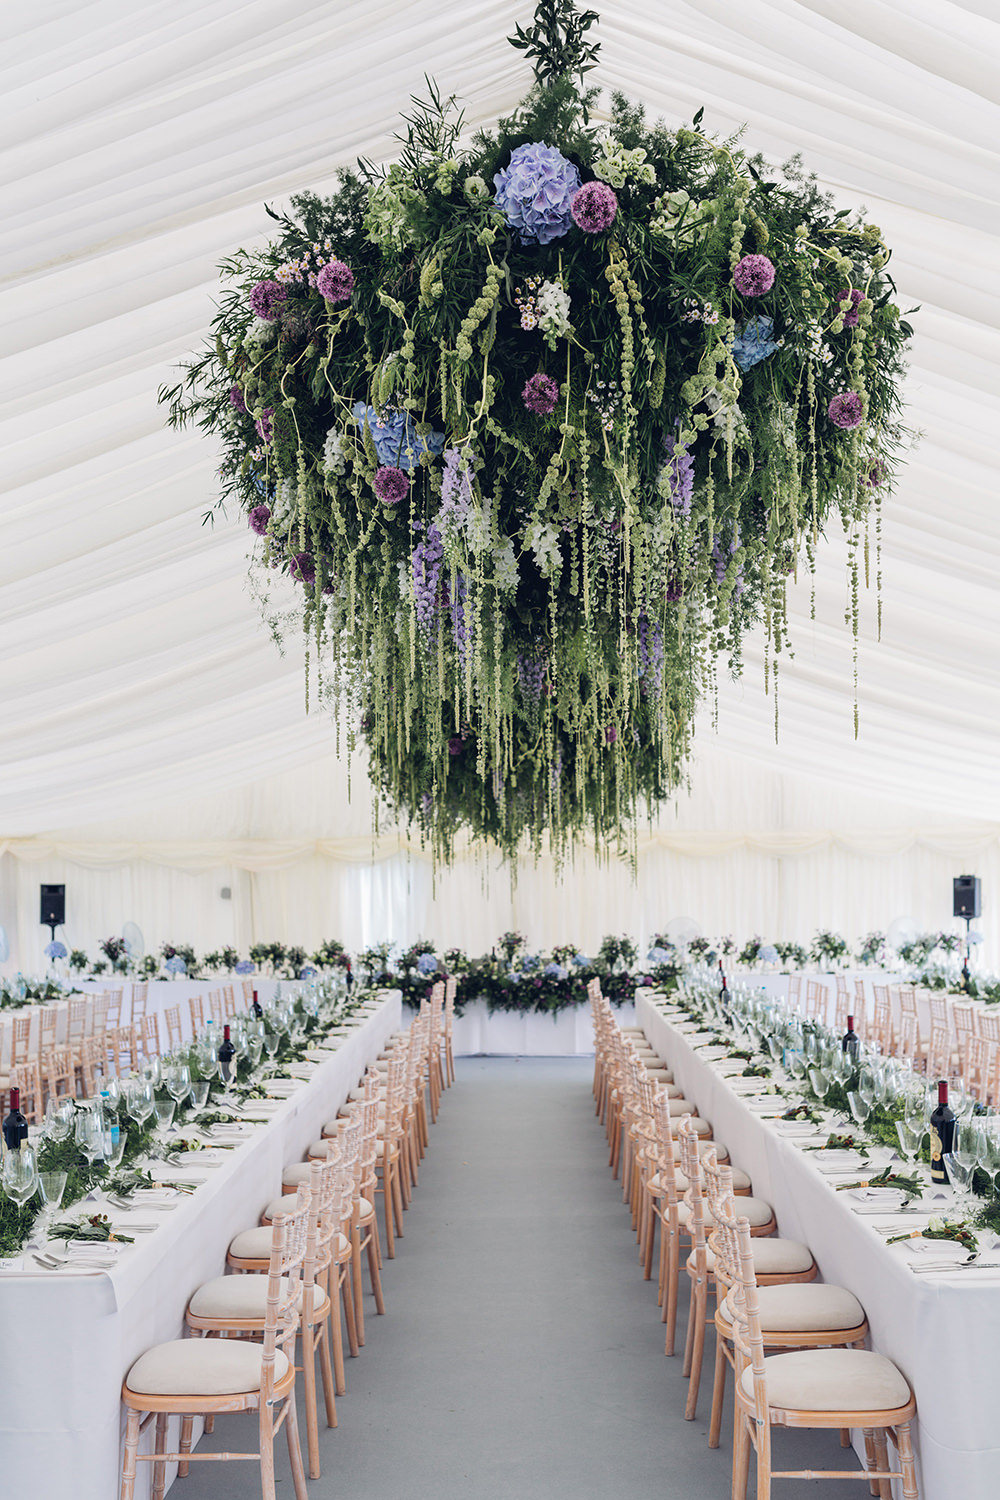 Hanging Florals For A White Marquee Wedding